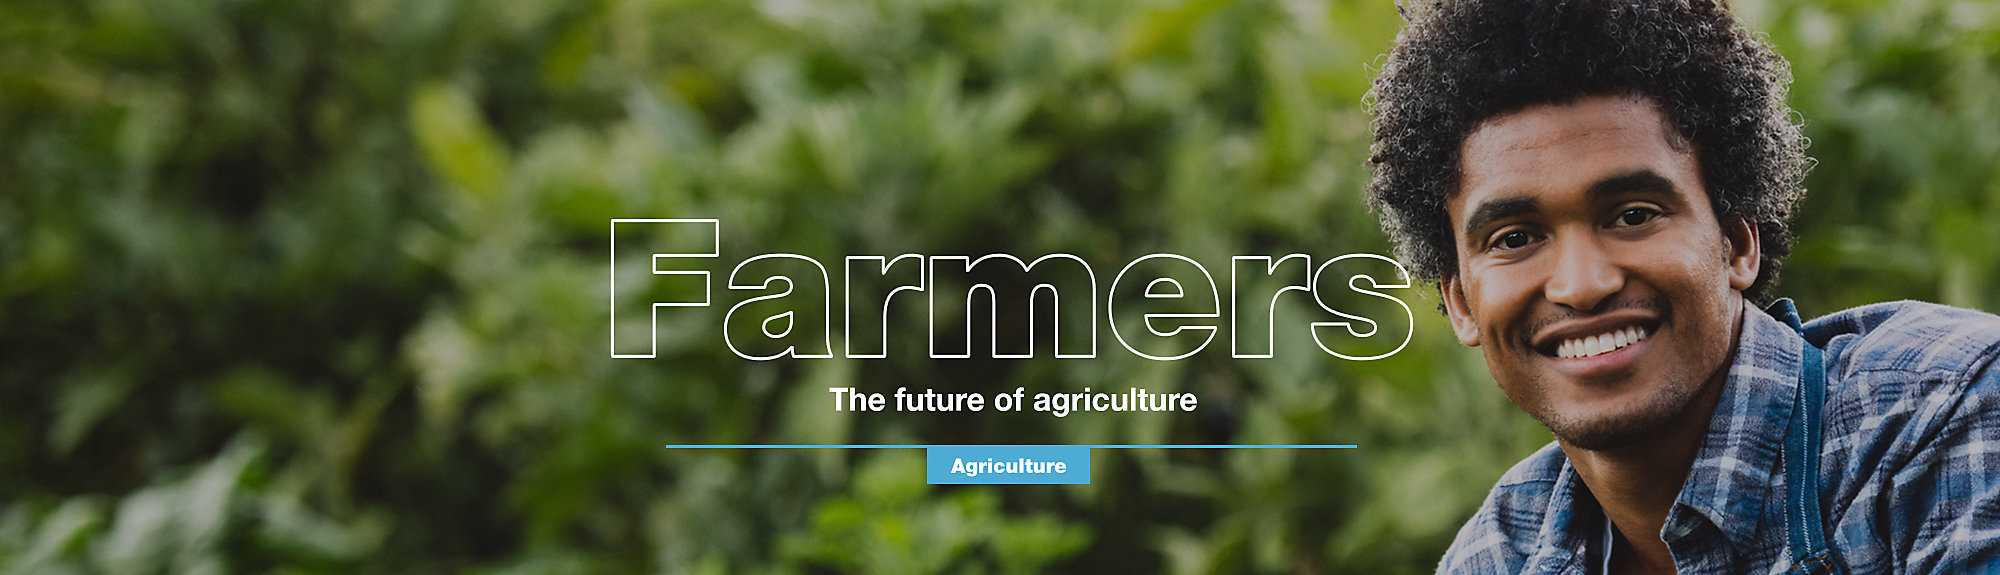 Farmers: The future of agriculture